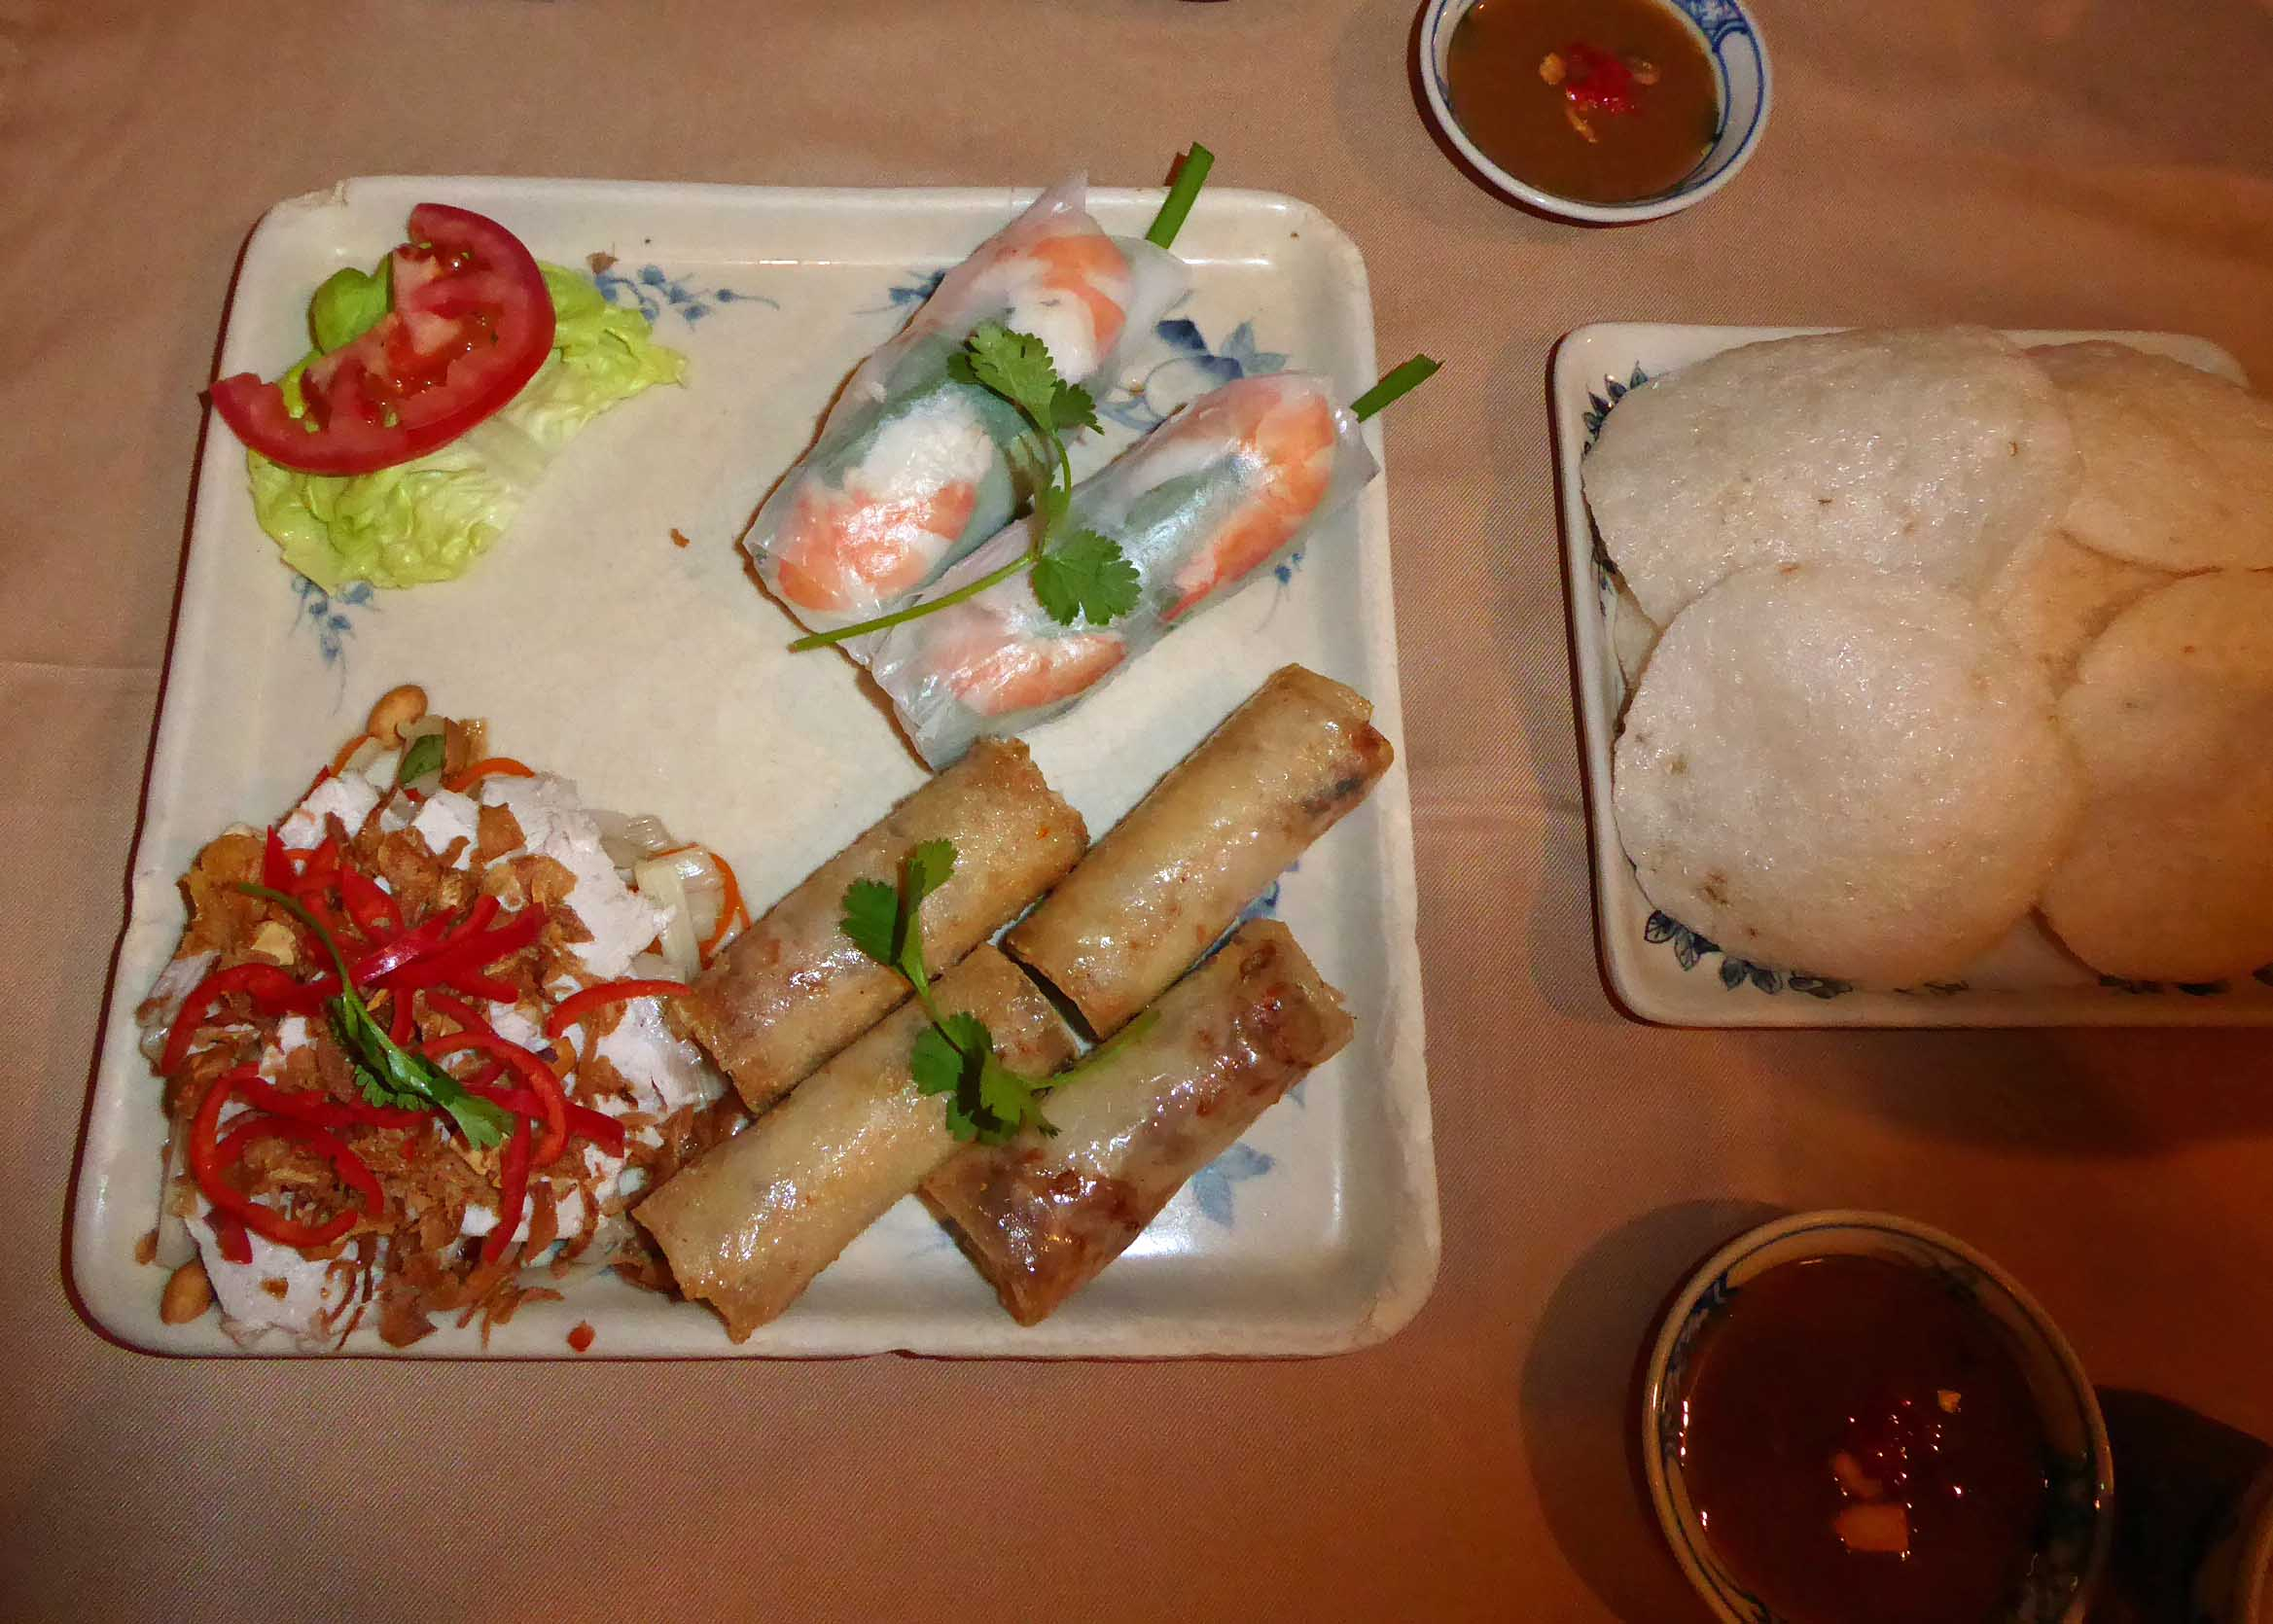 Square plate with spring rolls and salad